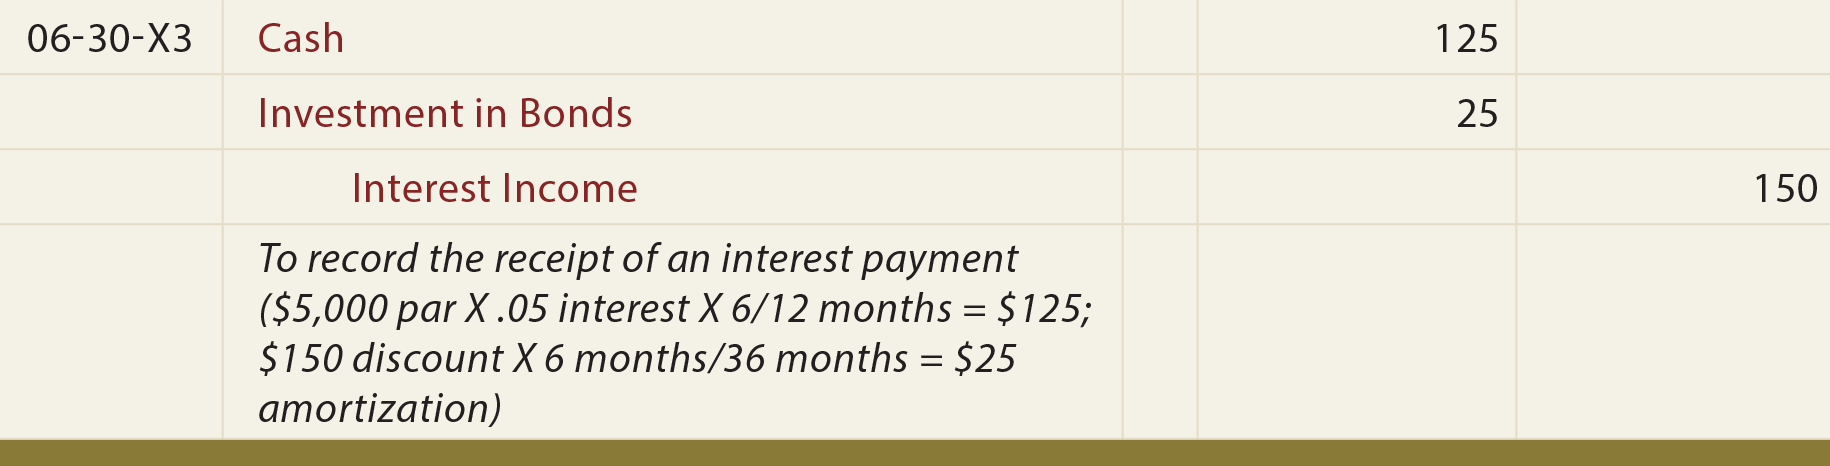 Investment in Bonds at a Discount General Journal Entry - To record the receipt of an interest payment